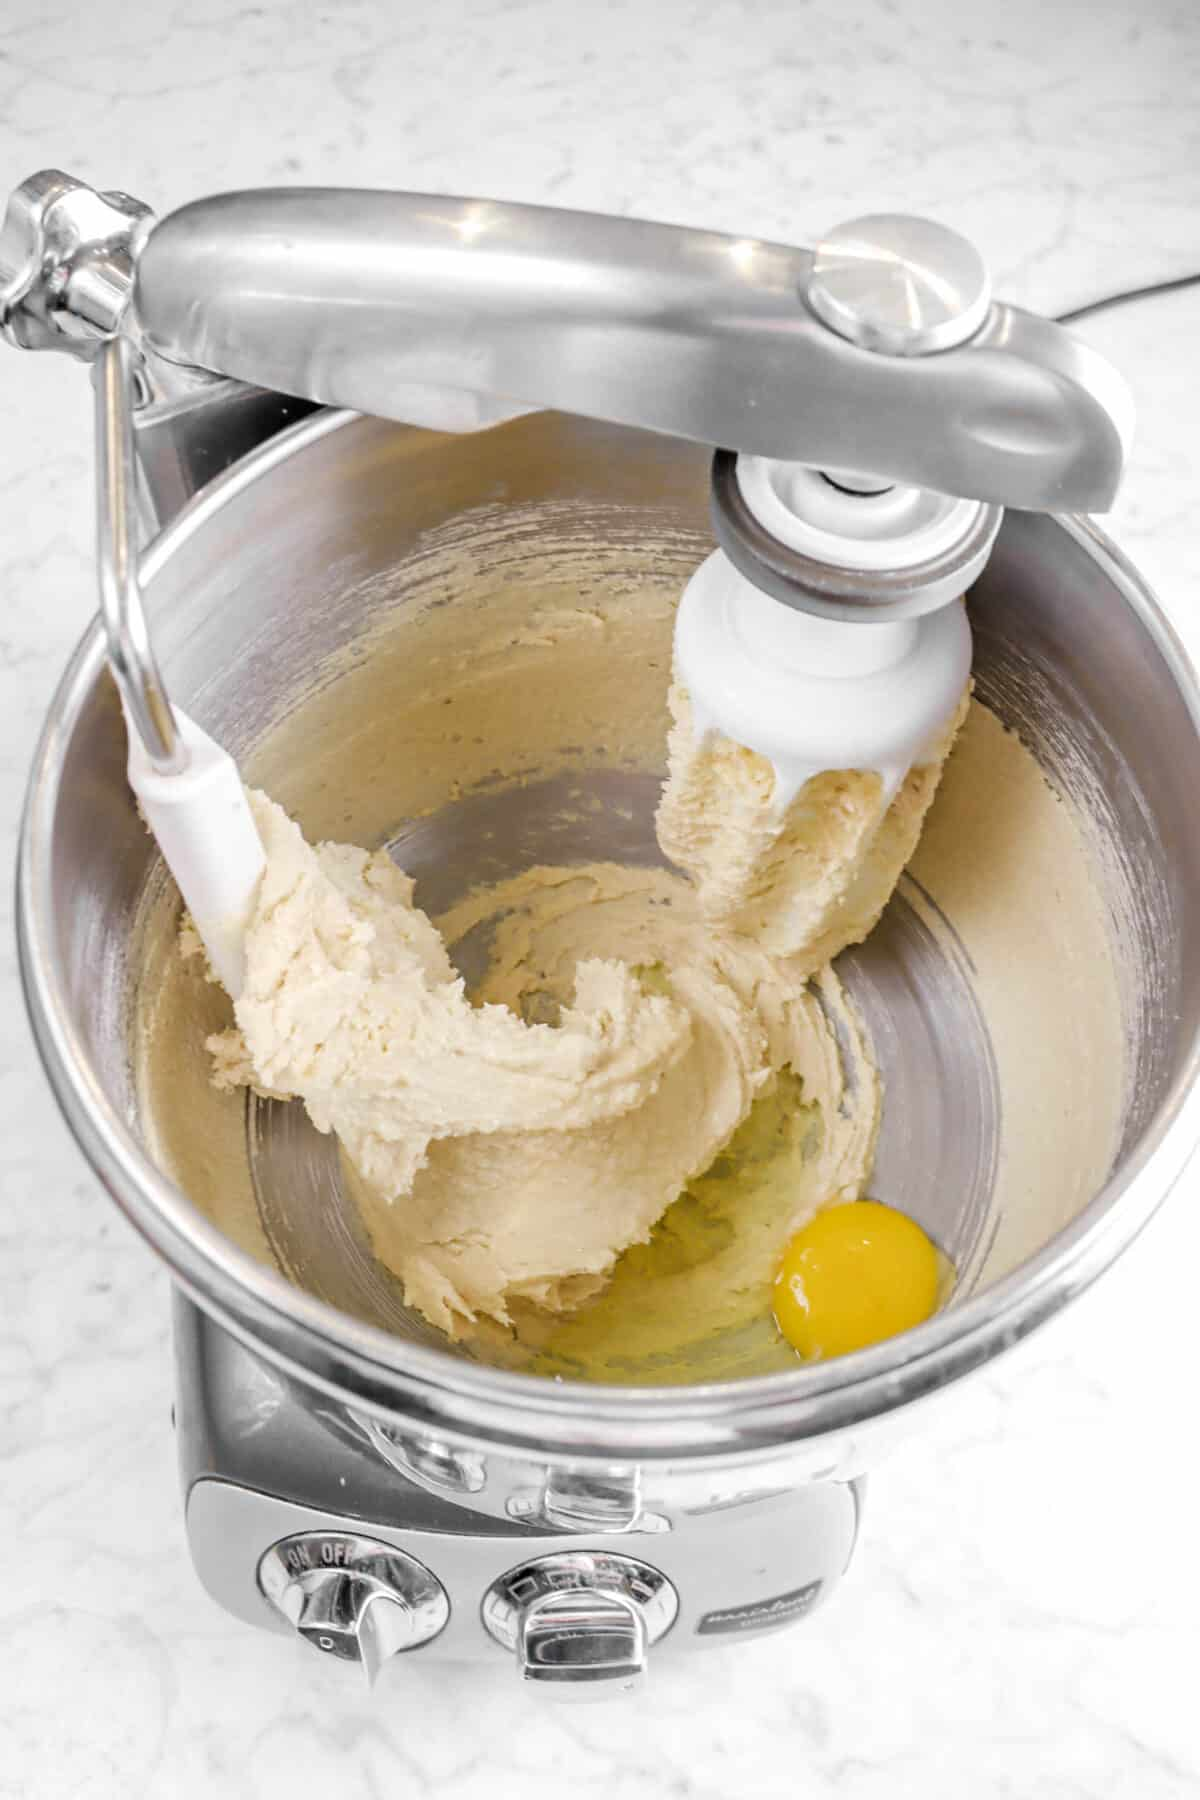 egg added to butter mixture